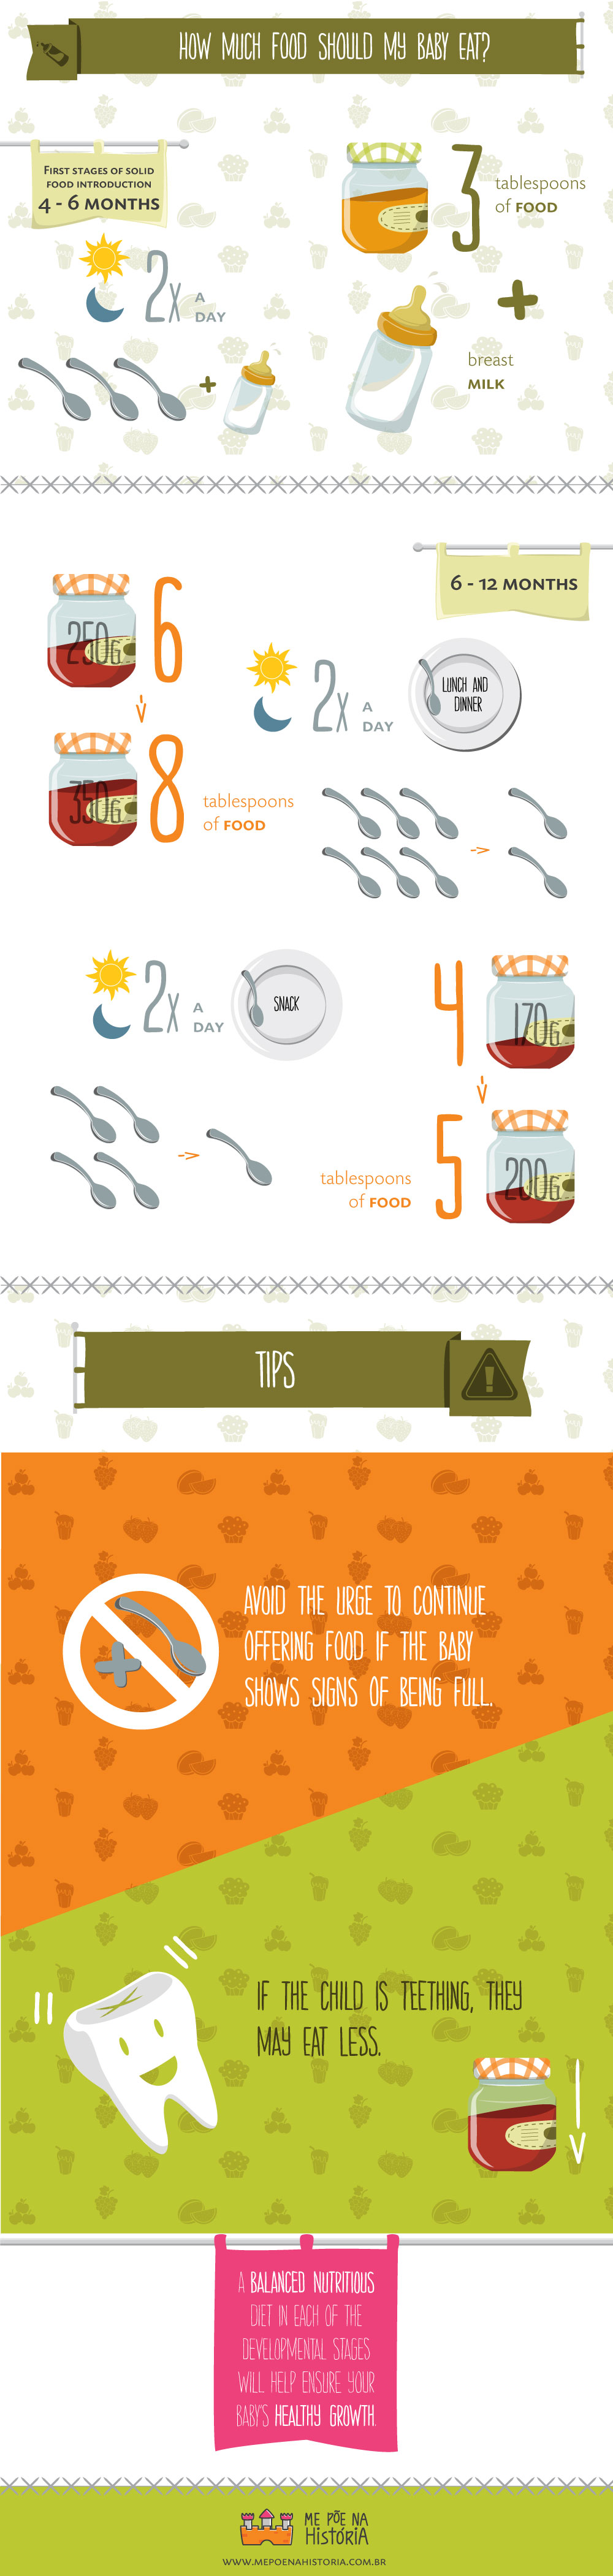 mpnh-how-much-food-should-my-baby-eat-infographic-plaza